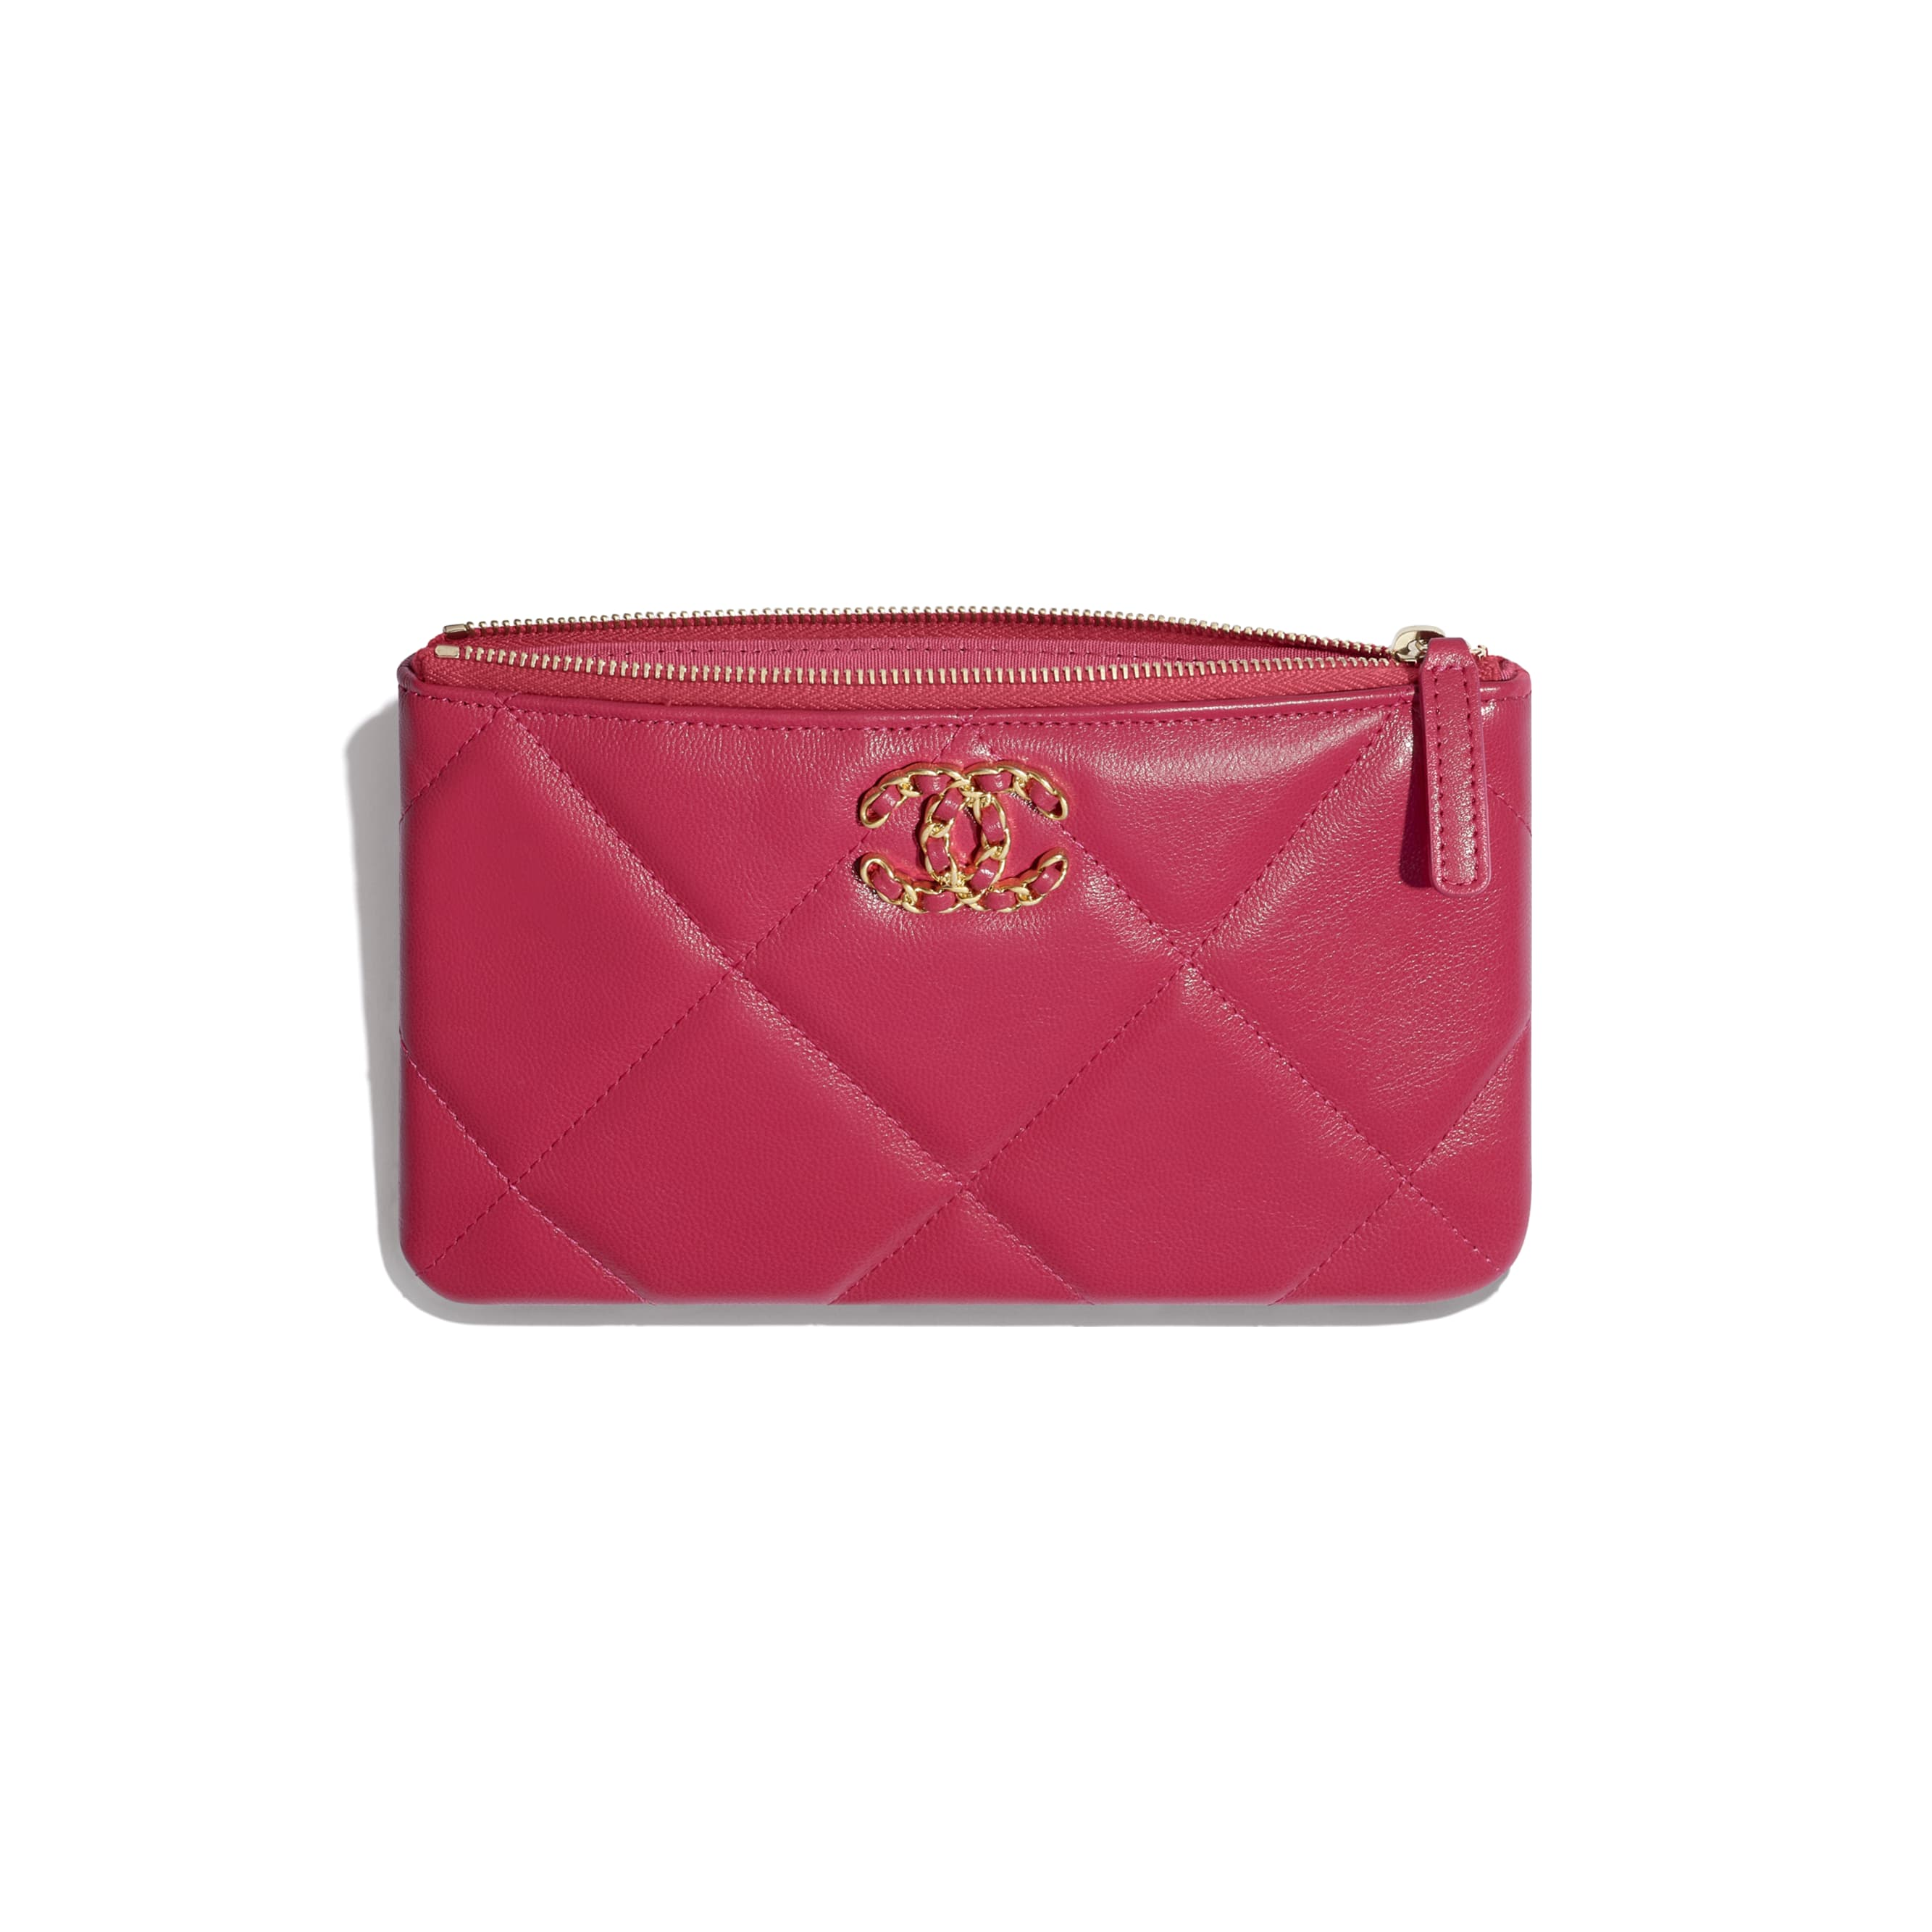 CHANEL 19 Small Pouch - Pink - Shiny Goatskin & Gold-Tone Metal - CHANEL - Other view - see standard sized version